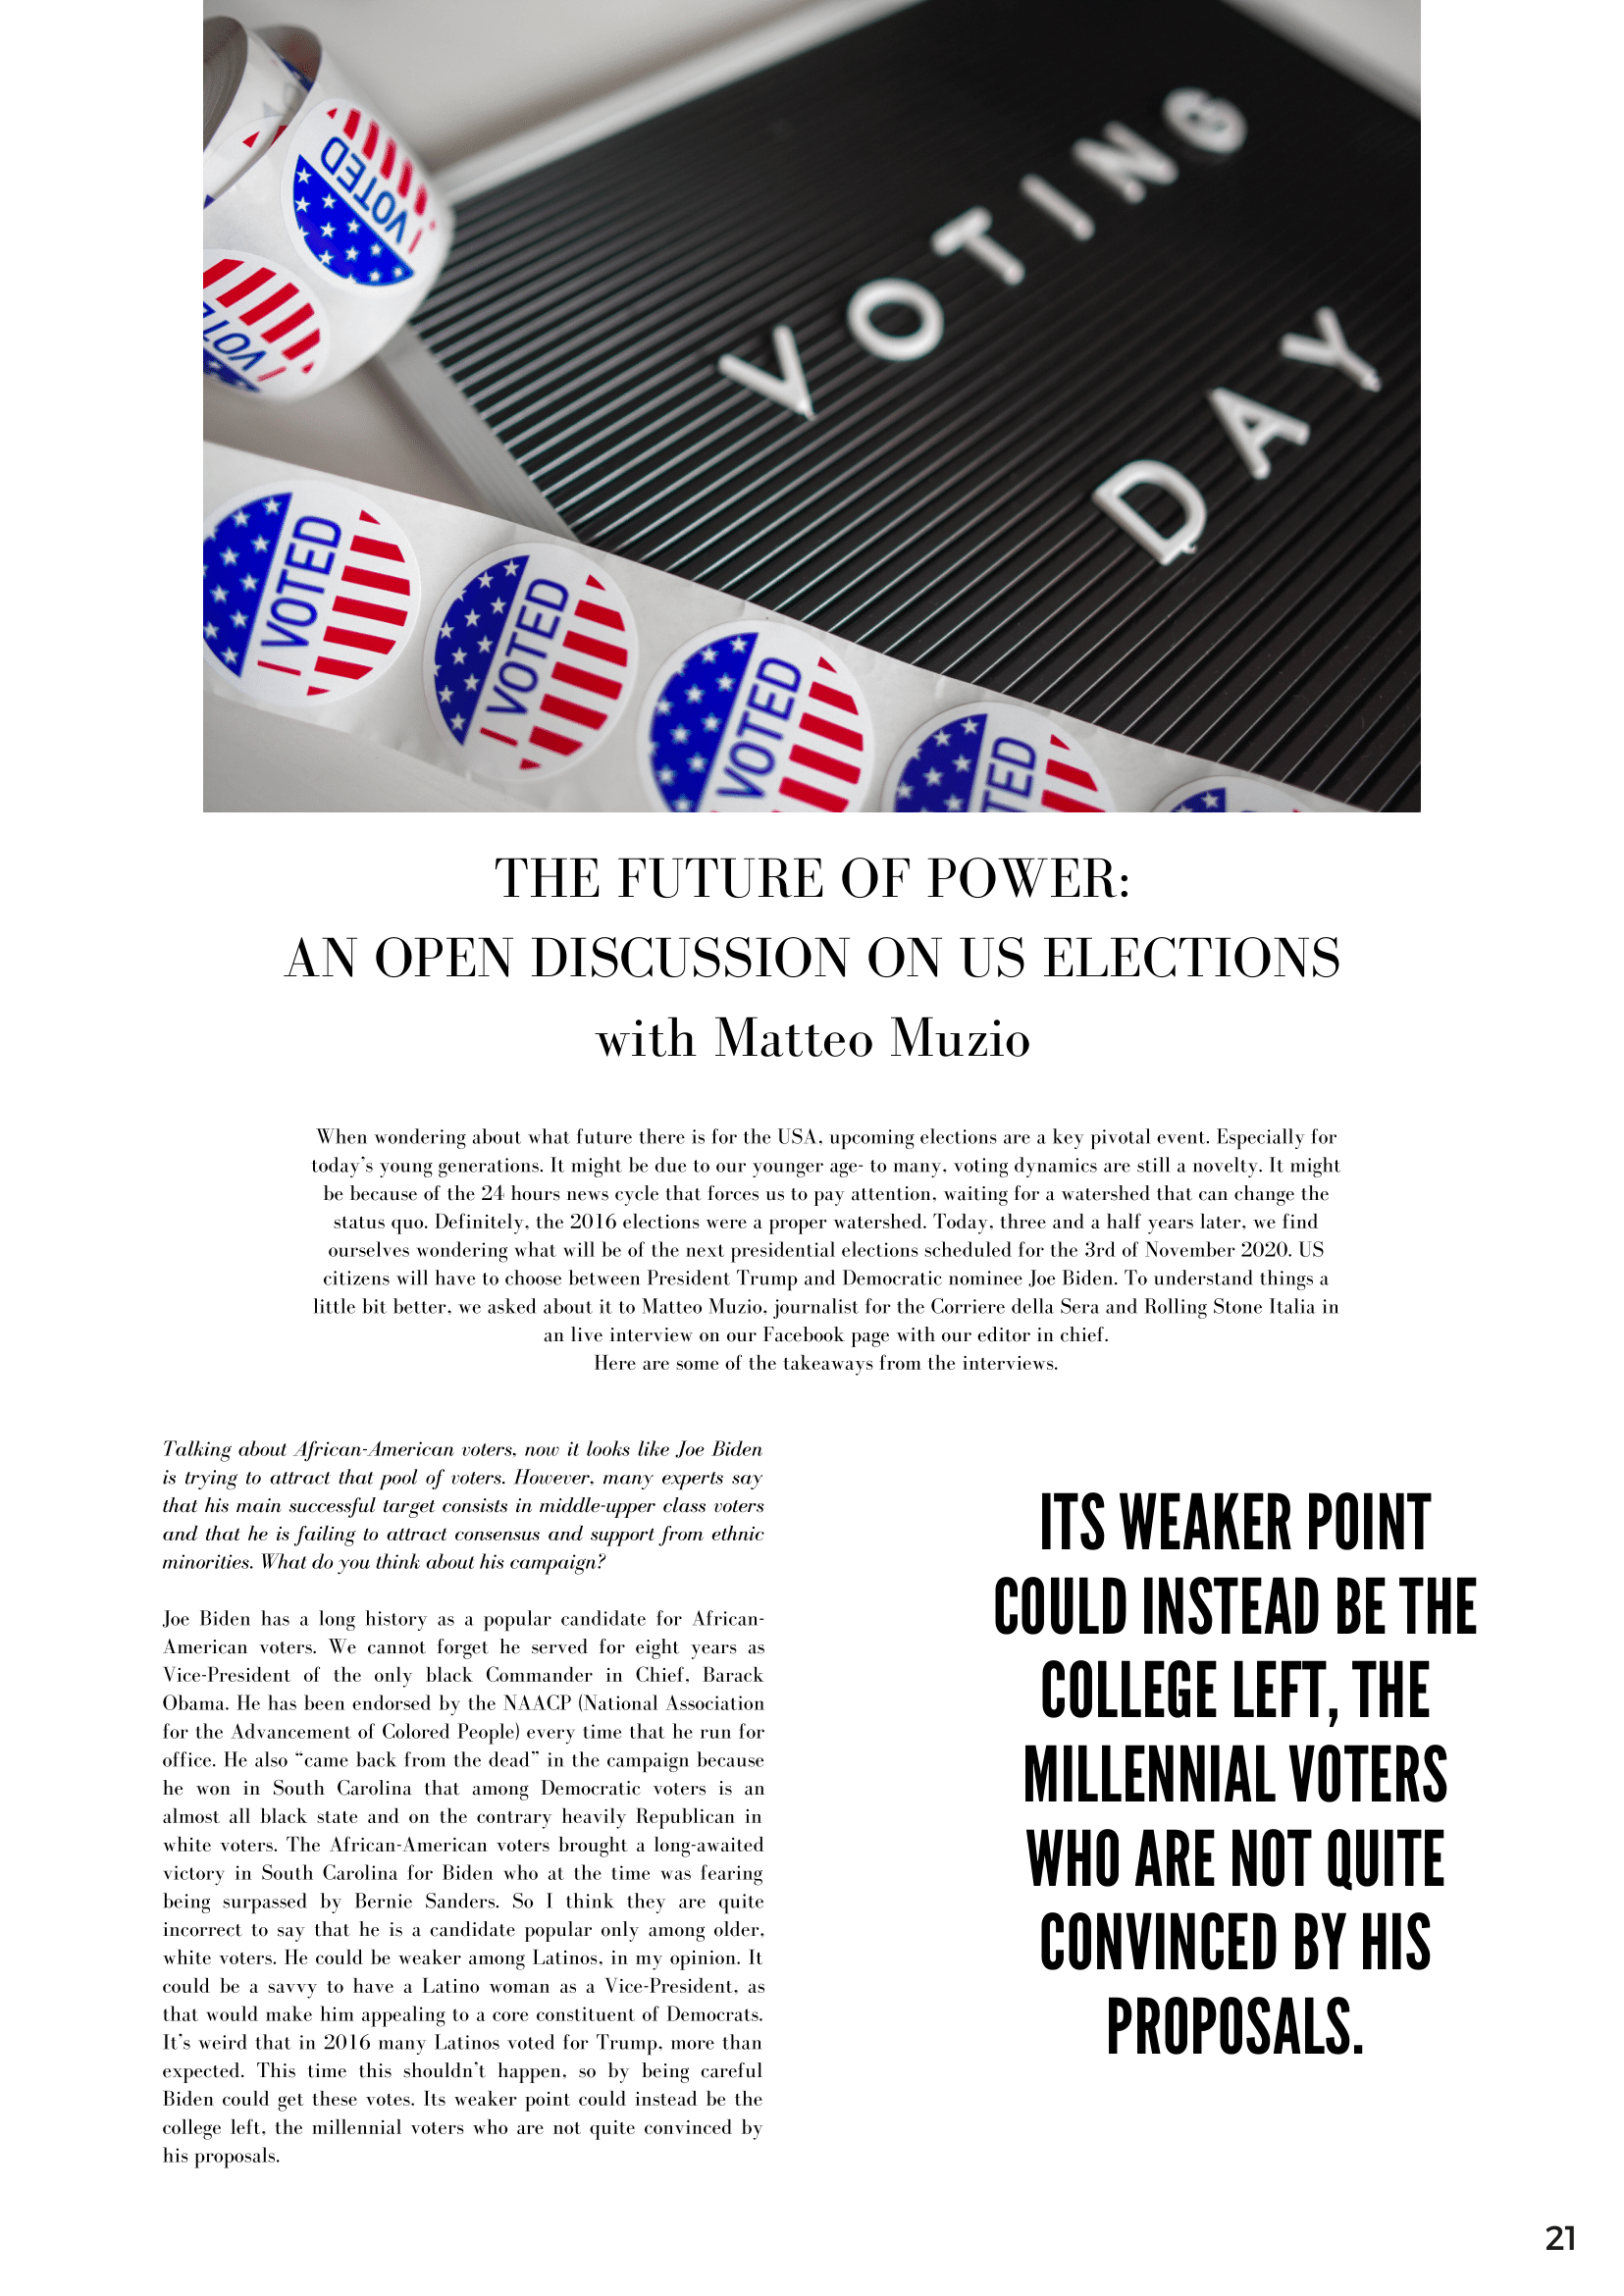 THE FUTURE OF POWER AN OPEN DISCUSSION ON US ELECTIONS with Matteo Muzio-1png